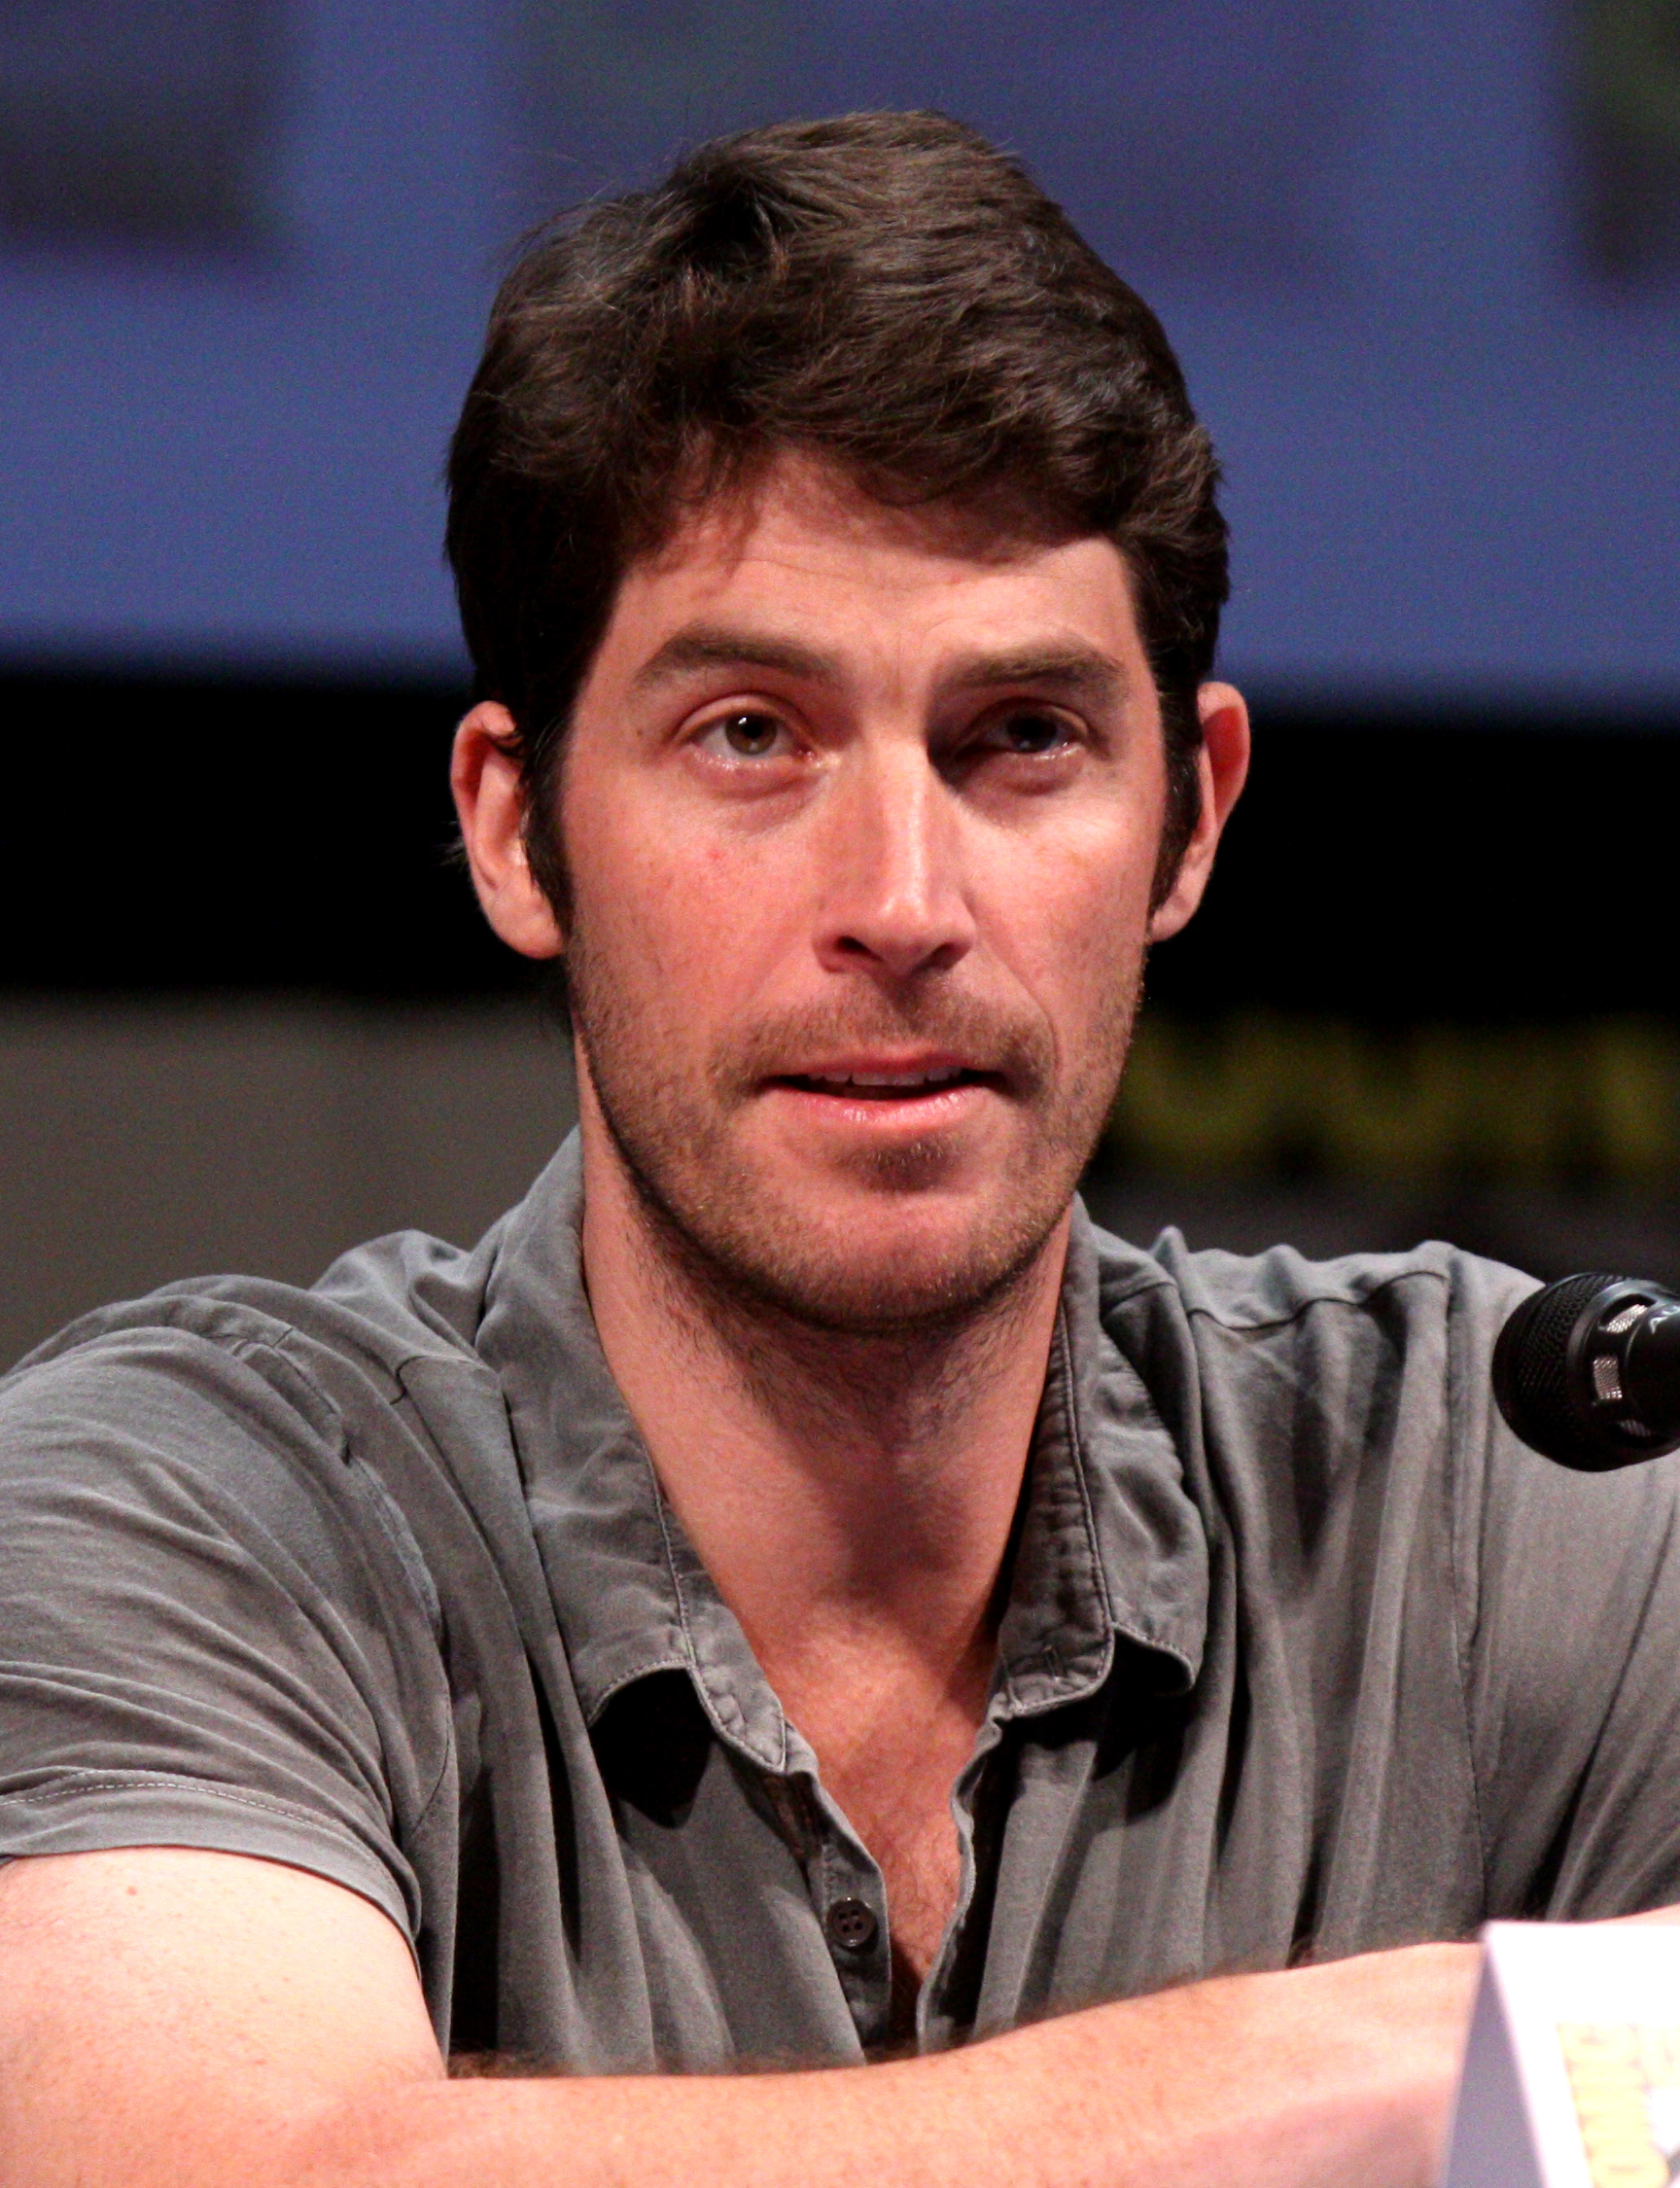 Viener at the [[San Diego Comic-Con International]], July 2011